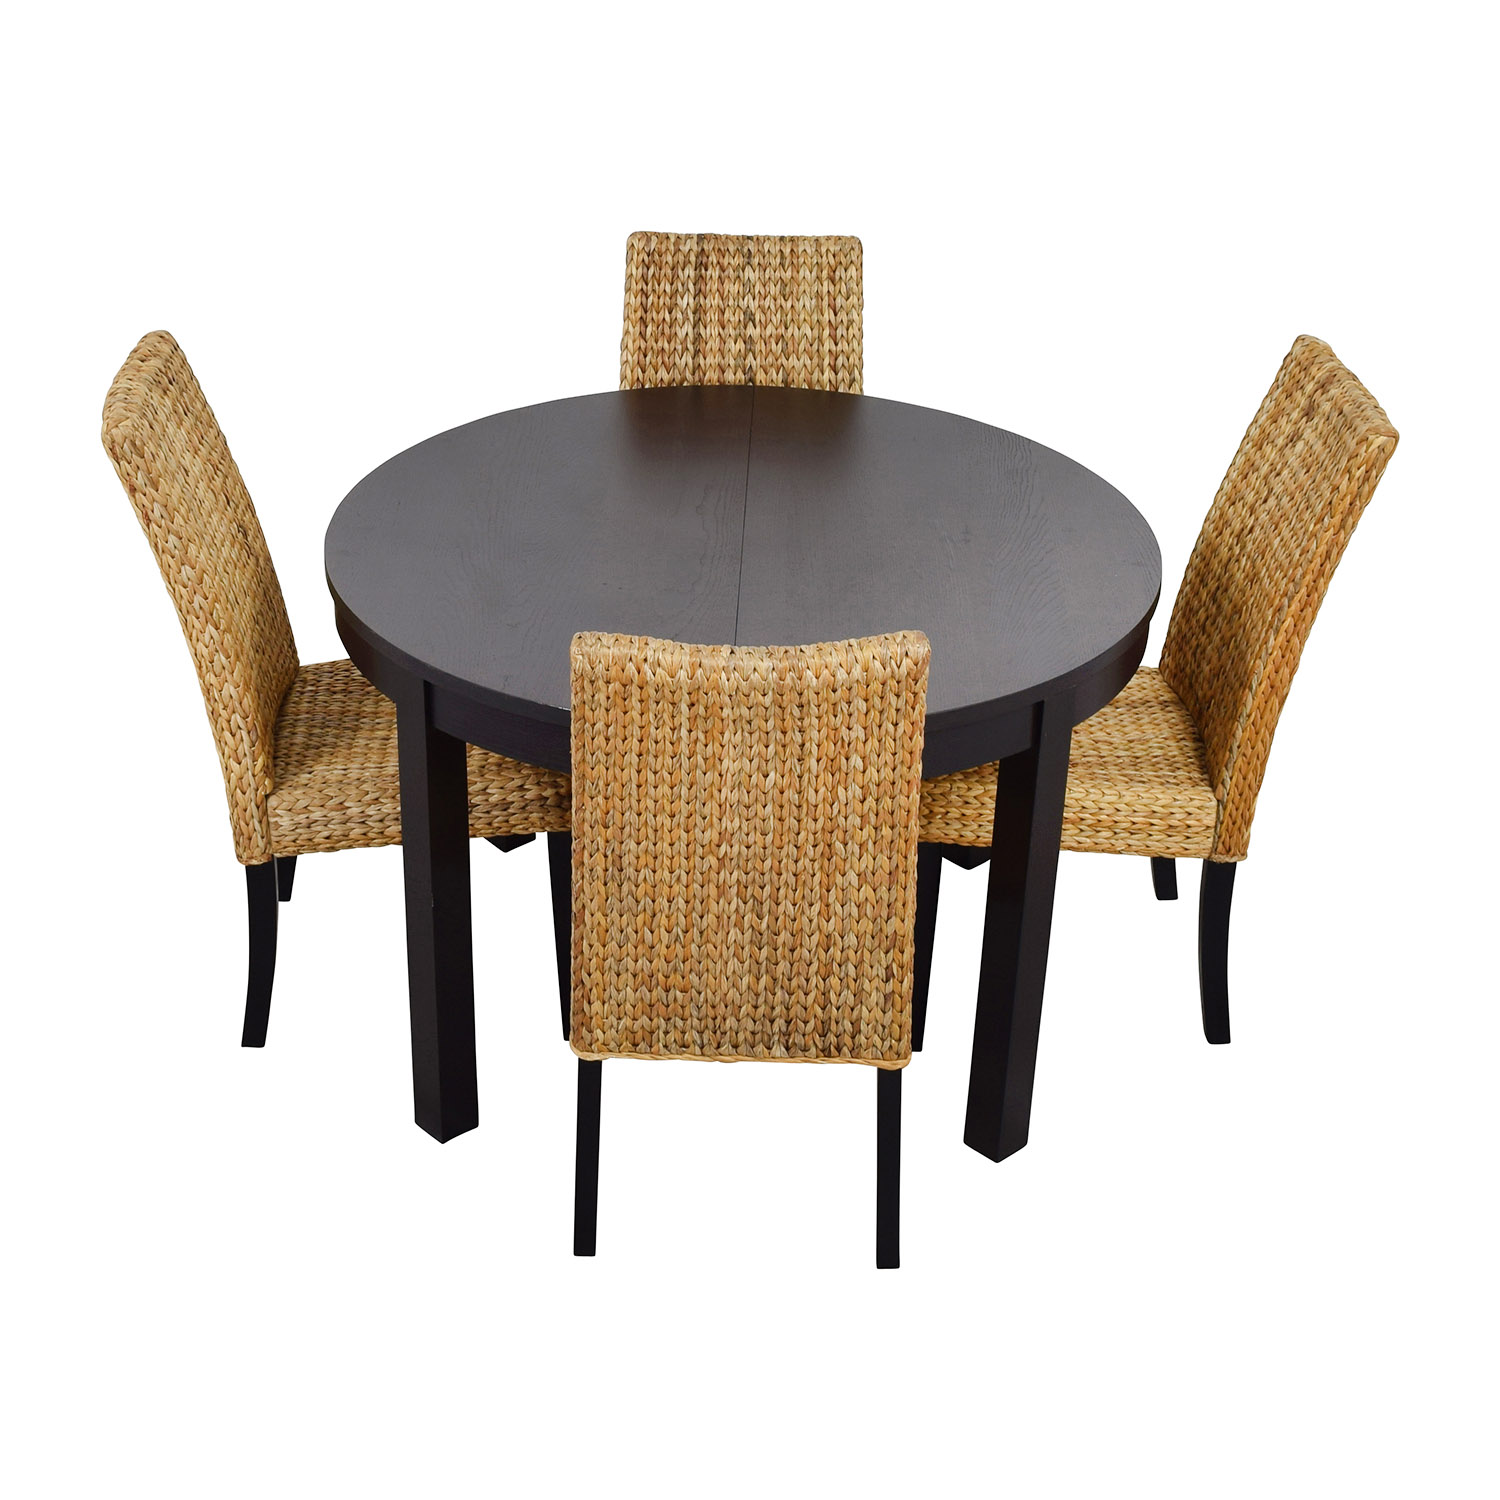 66 off macy 39 s ikea round black dining table set with for Round dining table for 4